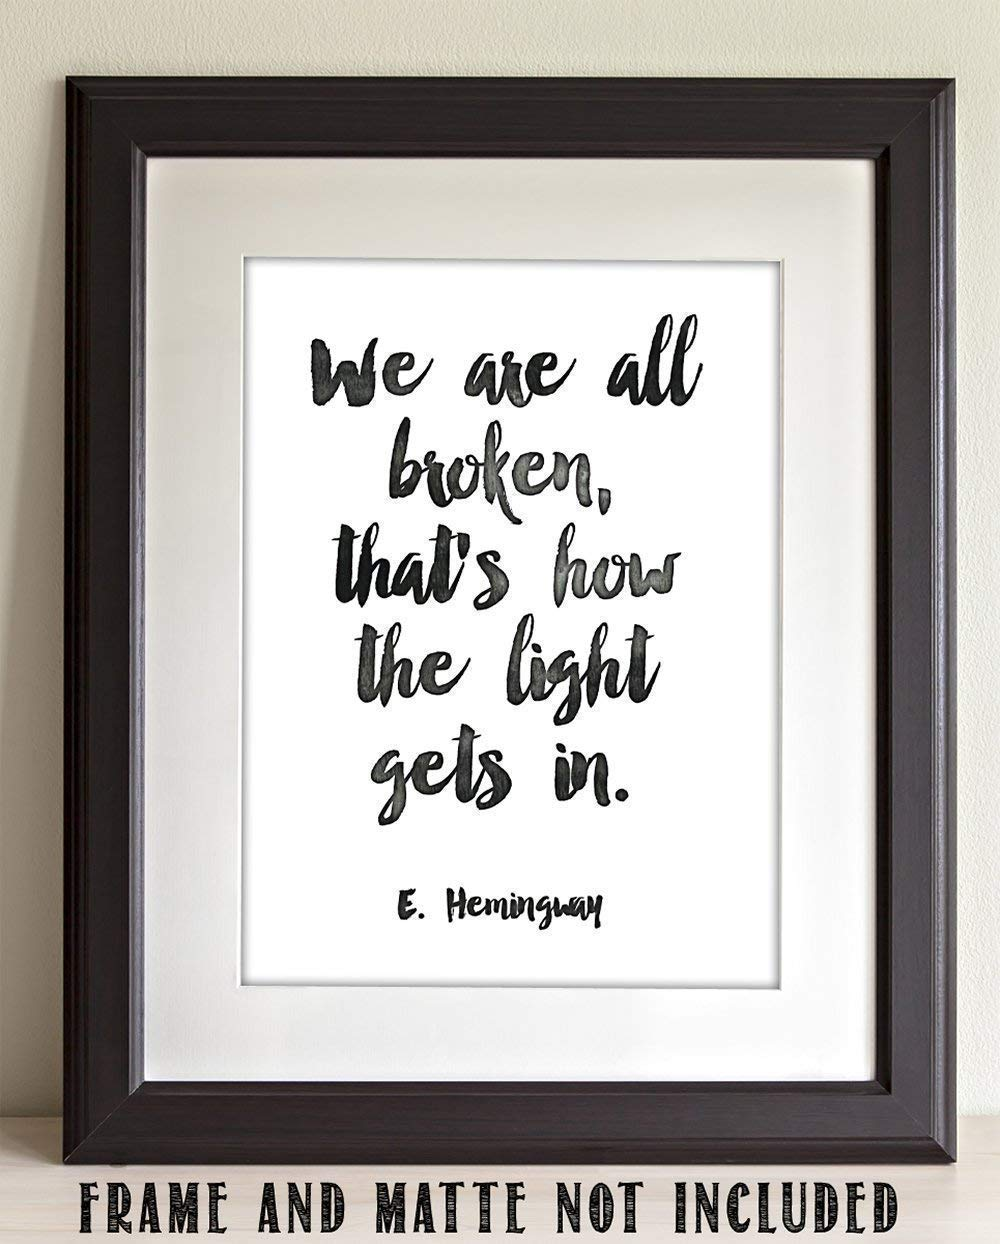 11x14 Unframed Typography Art We Are All Broken That/'s How the Light Gets In